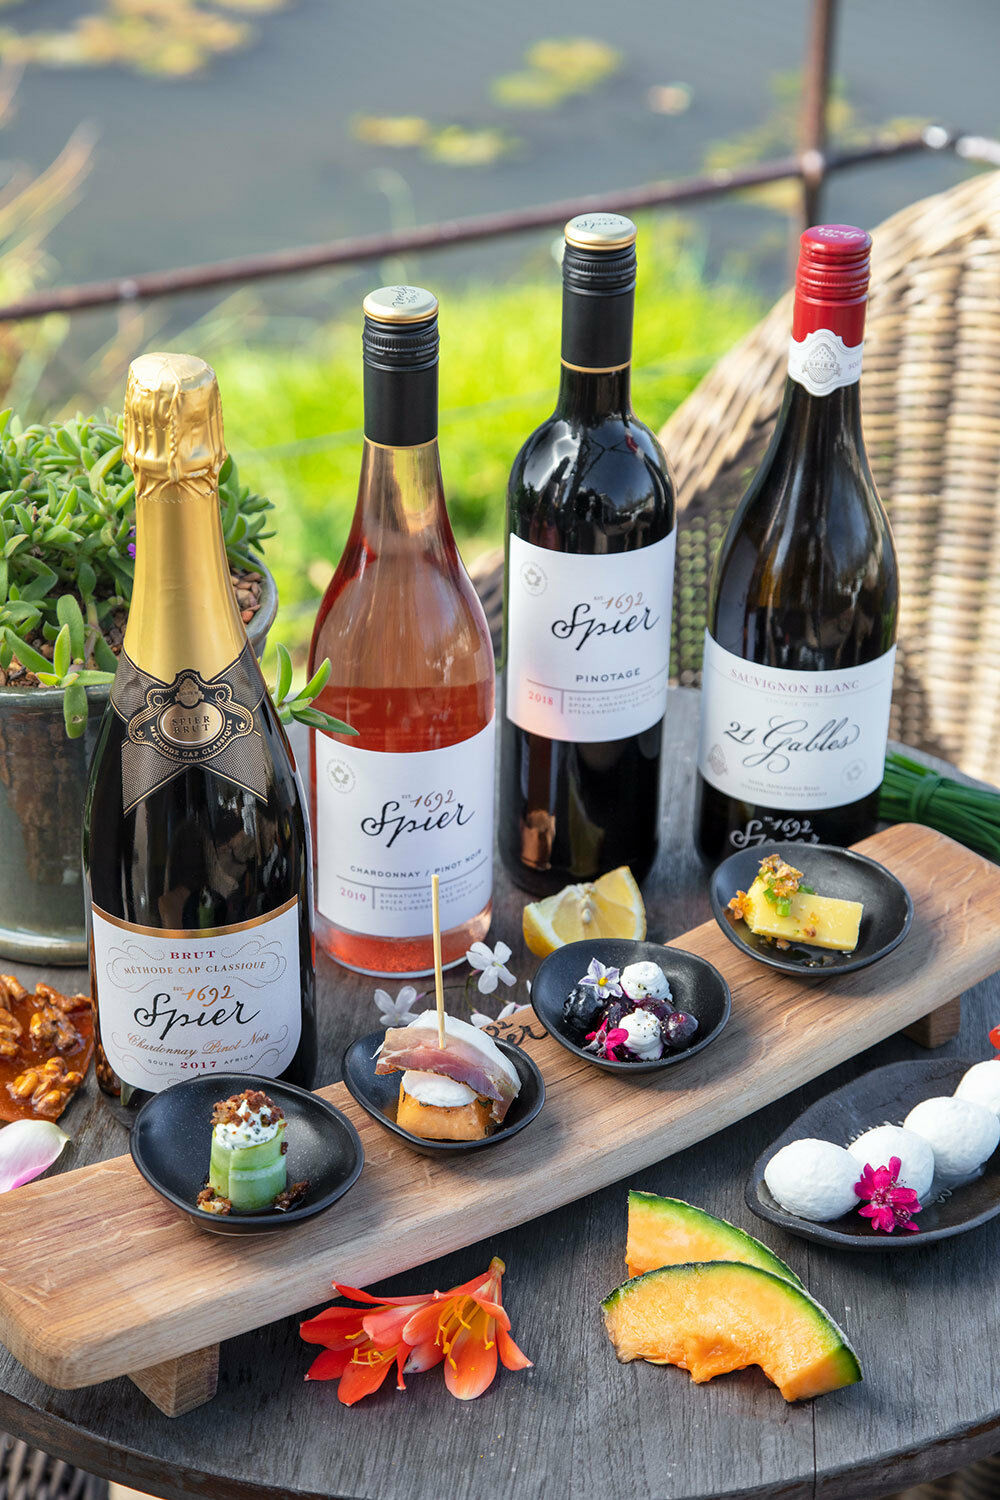 Spier's Spring Tasting celebrates the new season